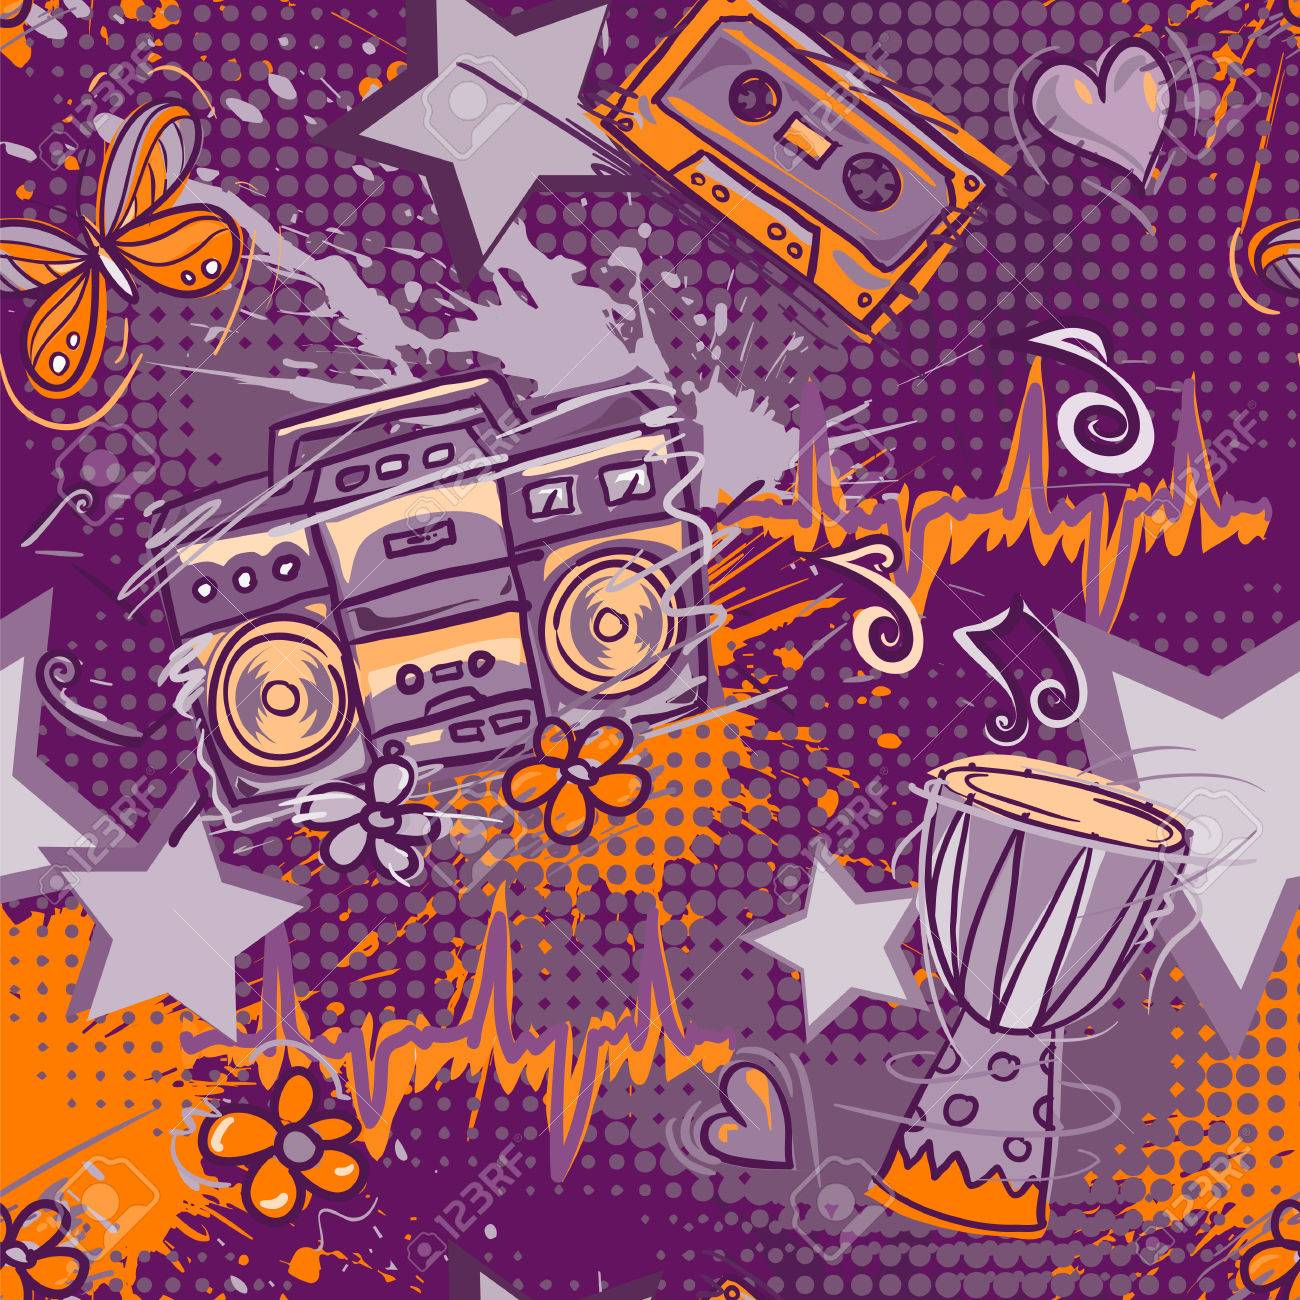 Best Wallpaper Music Tone - 56648687-bright-colored-seamless-pattern-in-hippie-style-abstract-background-with-notes-music-tape-retro-boom  HD_1002025.jpg